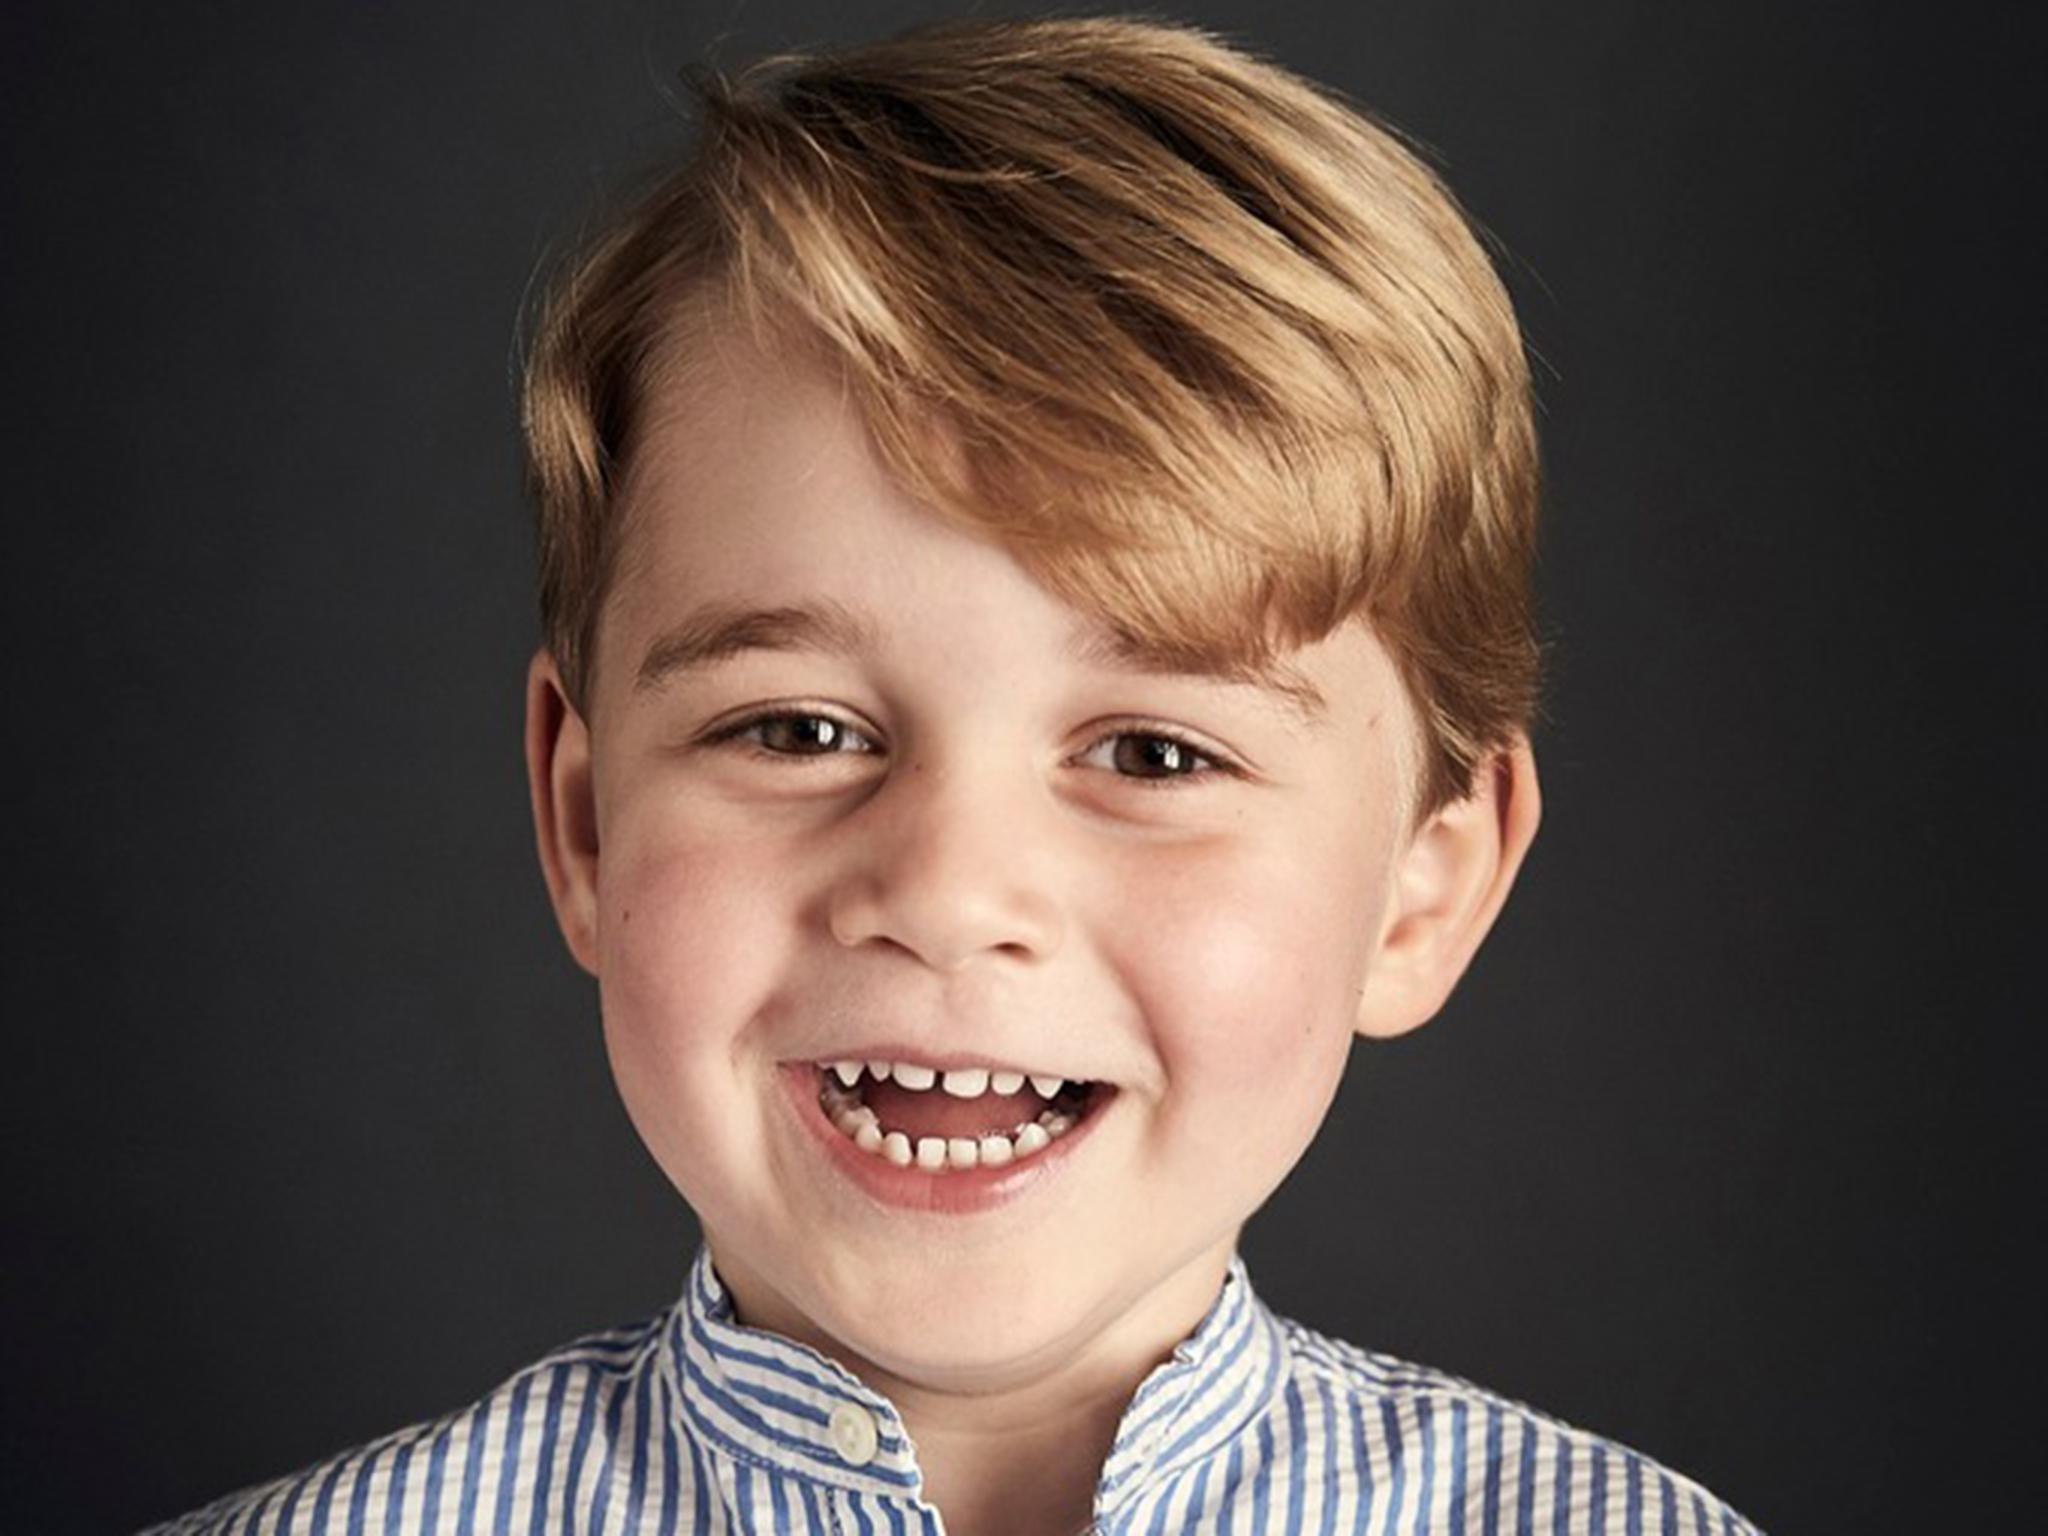 Prince George photo marks fourth birthday